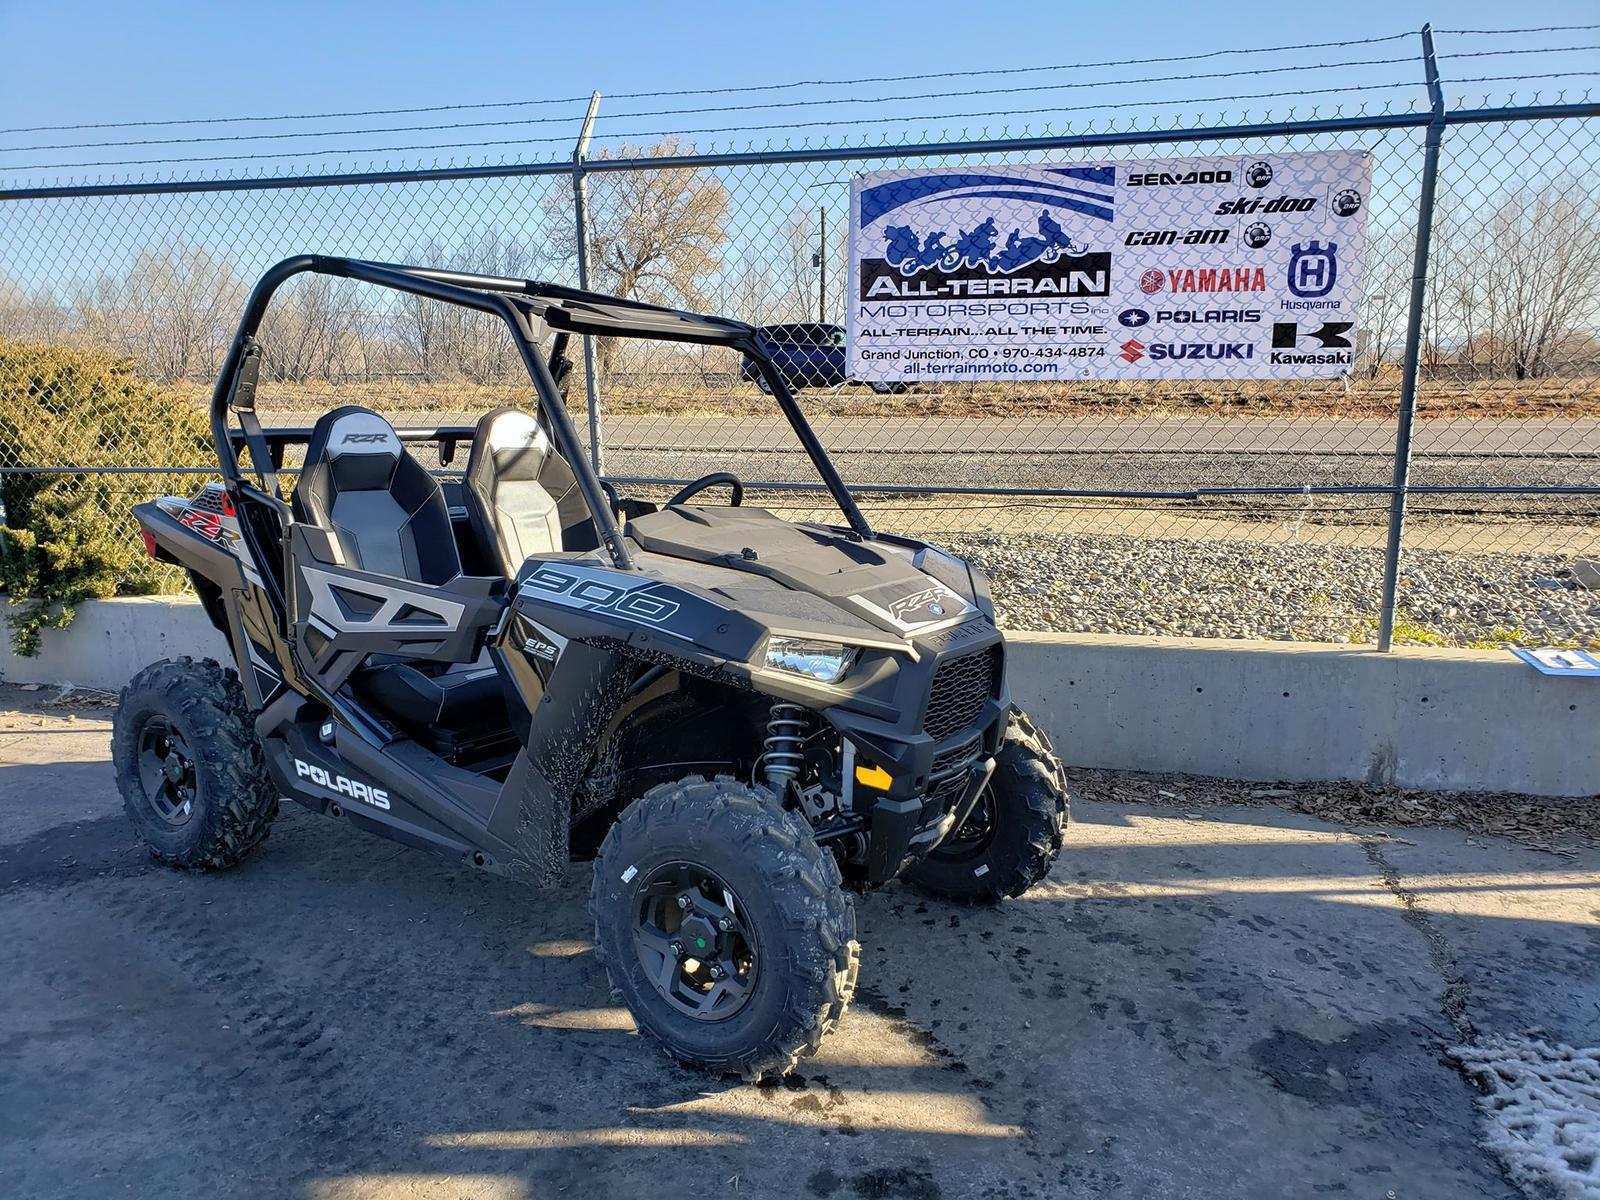 hight resolution of rzr 900 black 2019